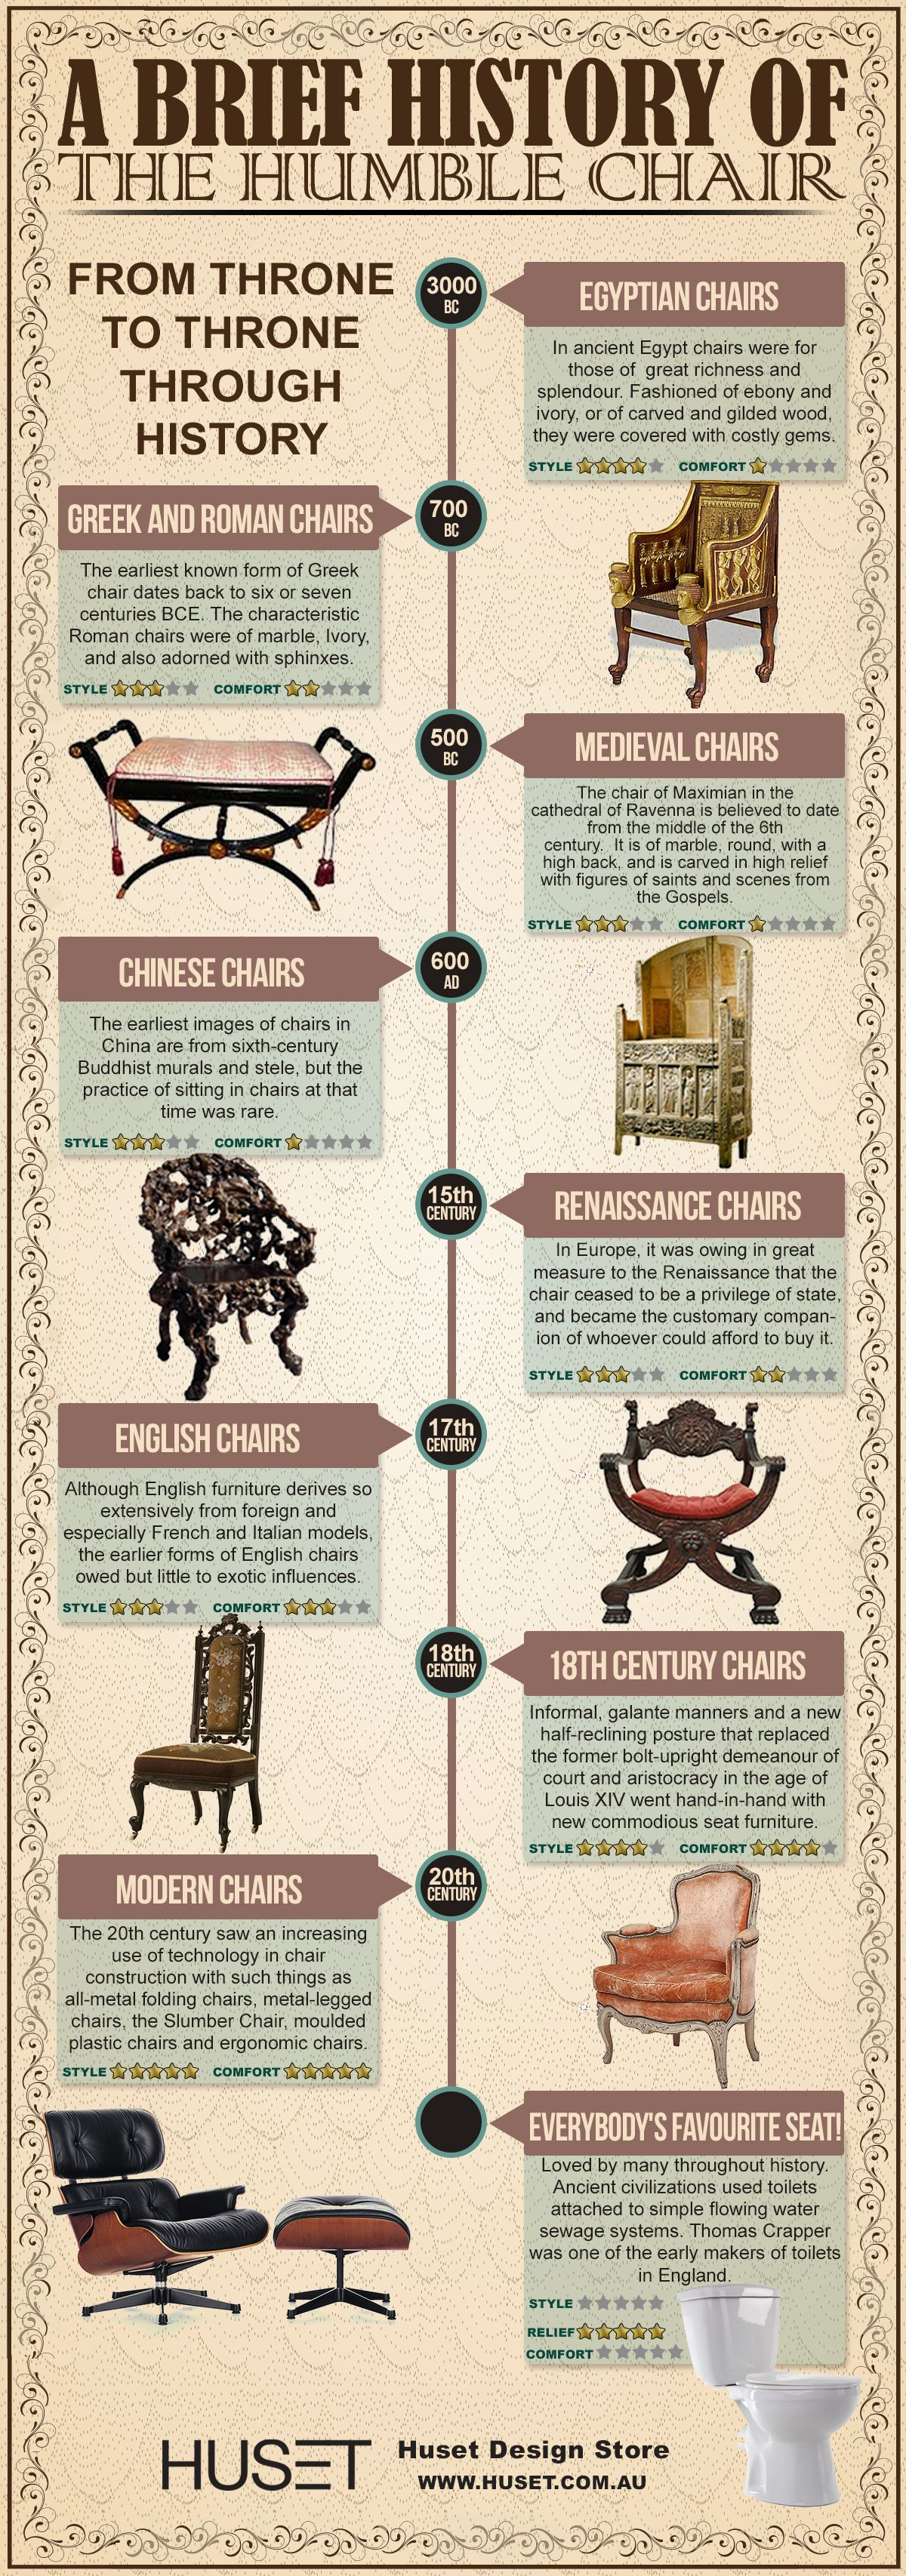 A Guide To Rustic Décor A Brief Introduction To This: A Brief History Of The Humble Chair